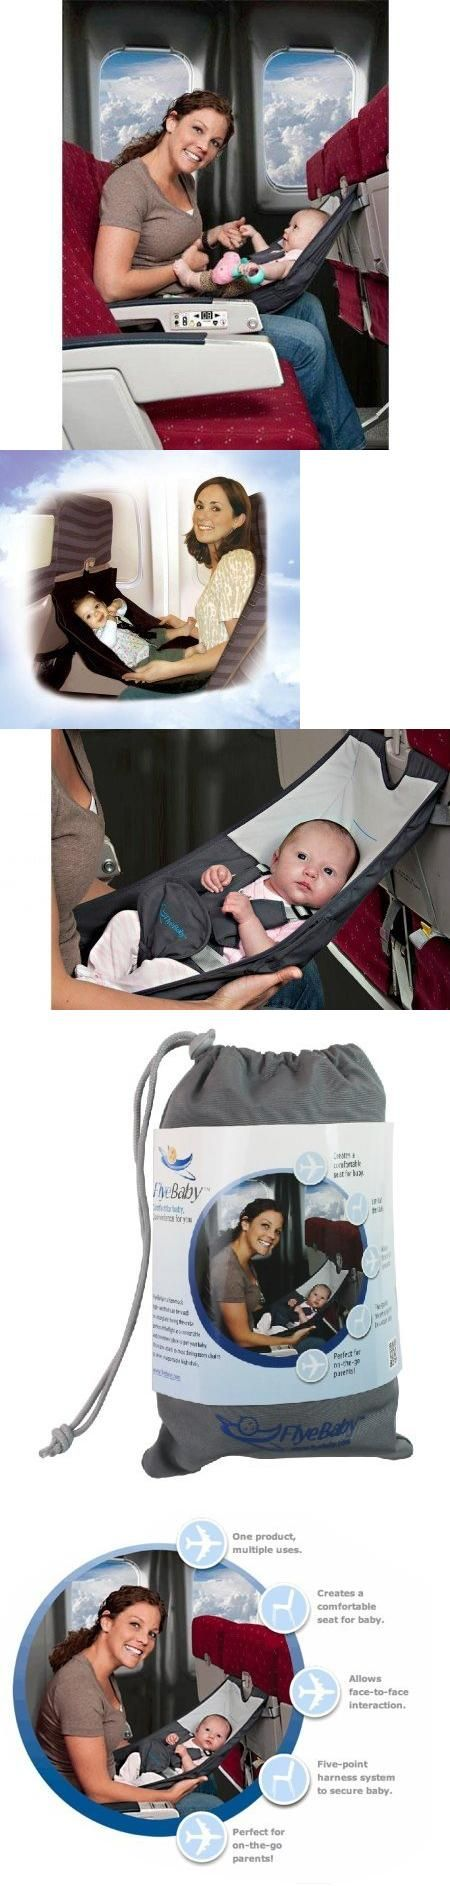 Air Travel with Baby Made Easy Infant Airplane Seat Flyebaby Airplane Baby Comfort System